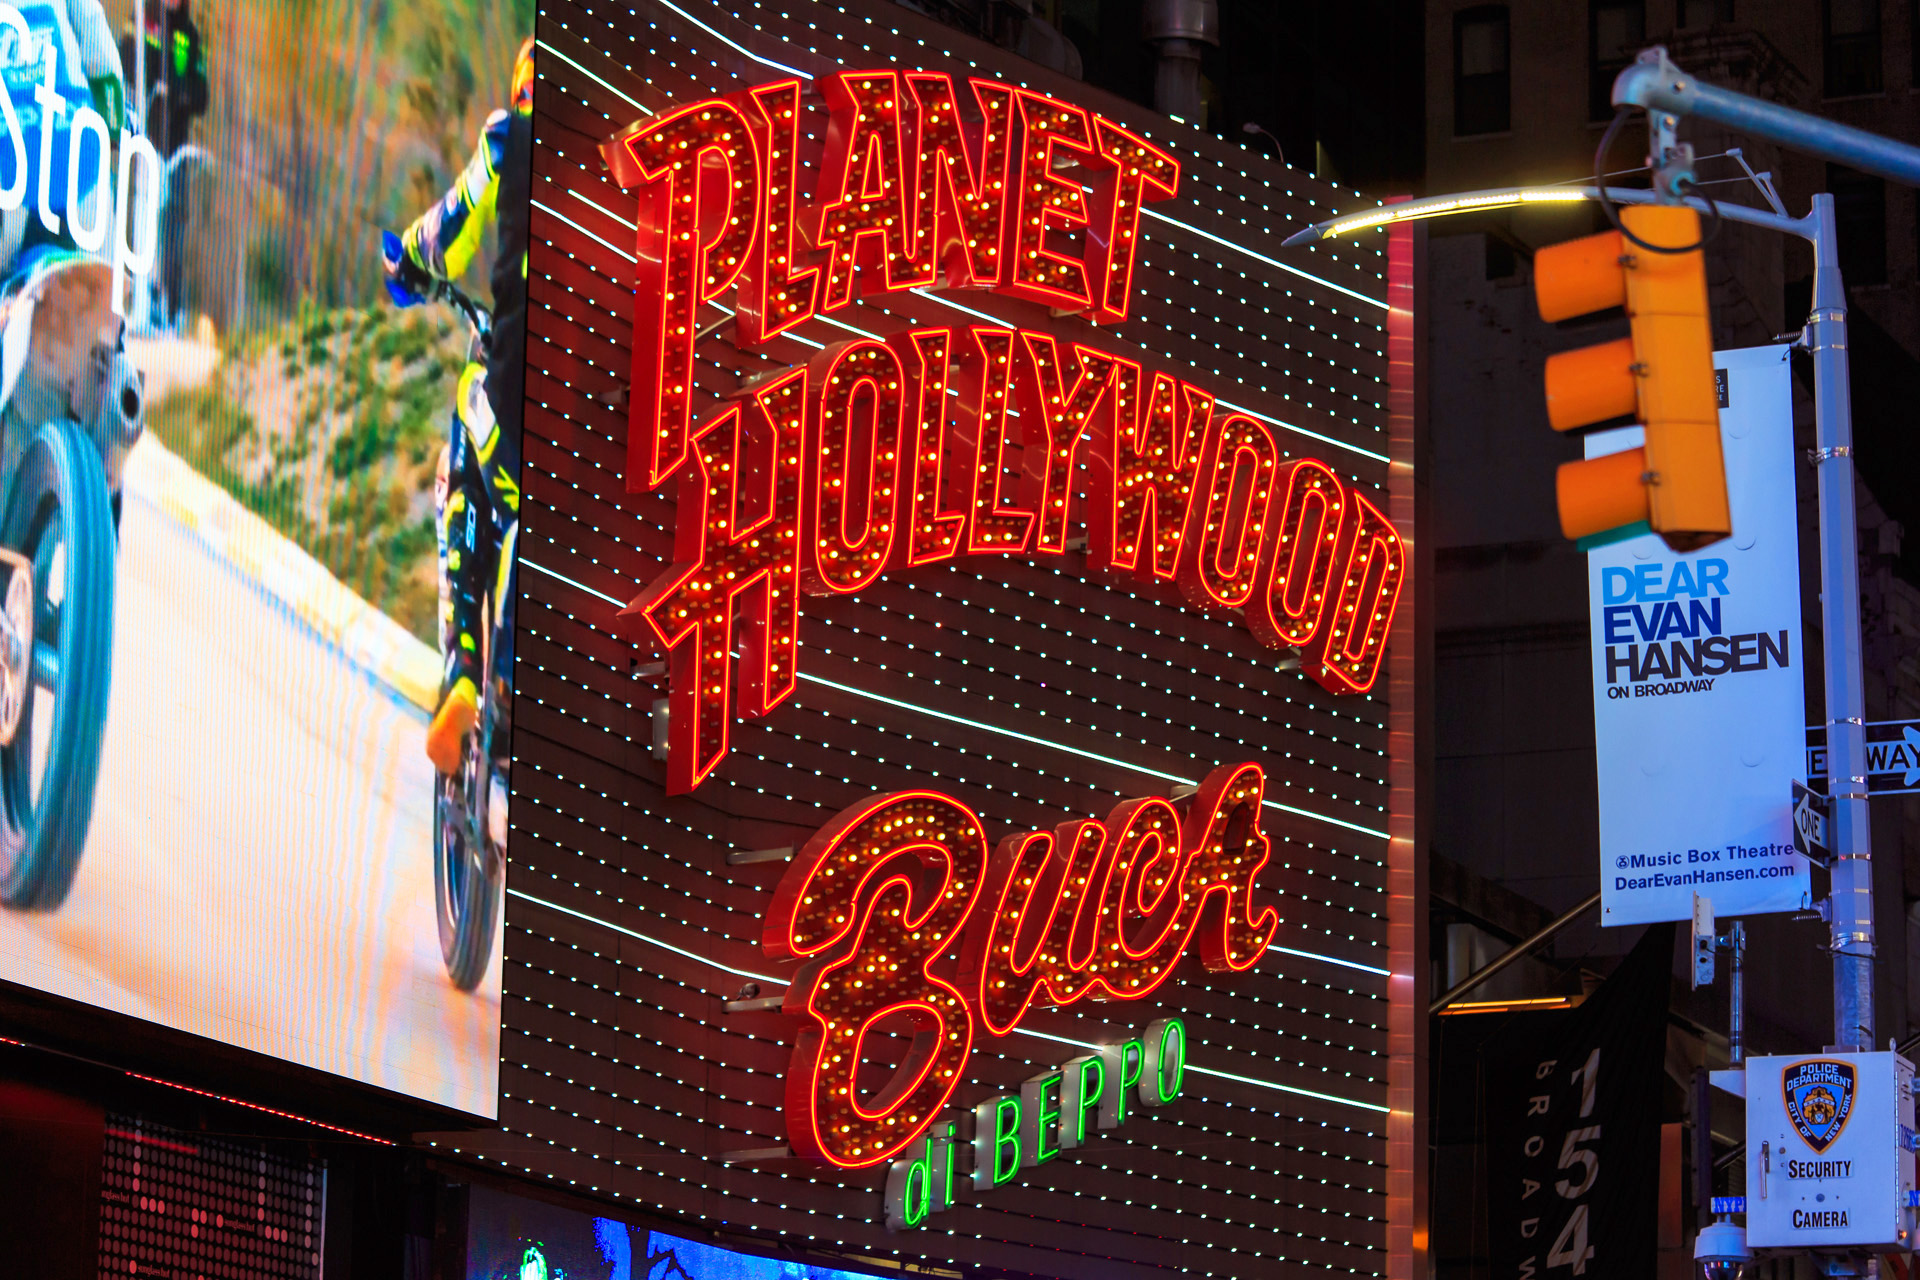 Times Square Planet Hollywood skylt New York Alexa Produktion